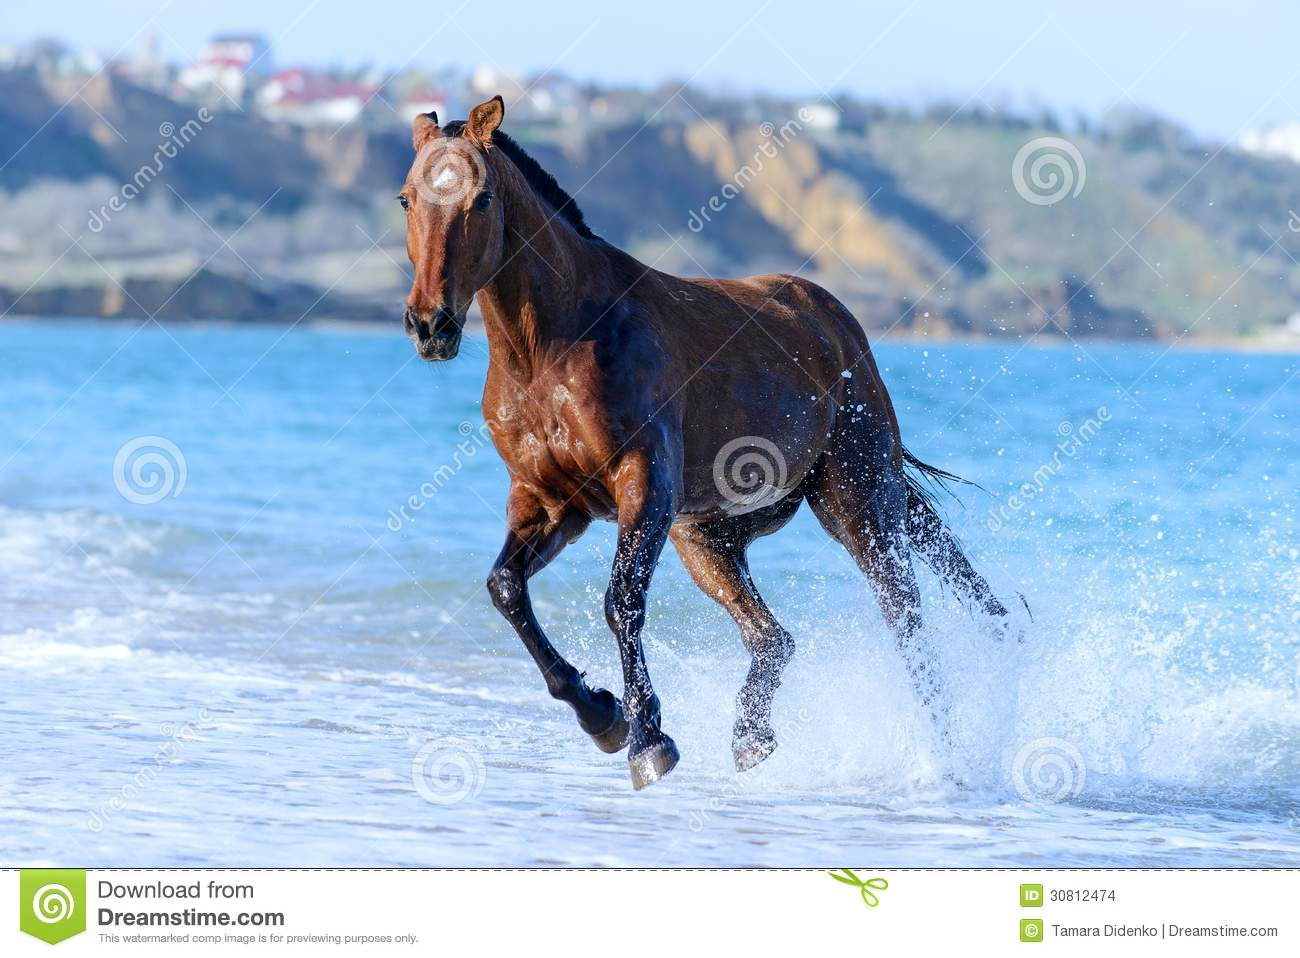 Horse In The Water Stock Images - Image: 30812474